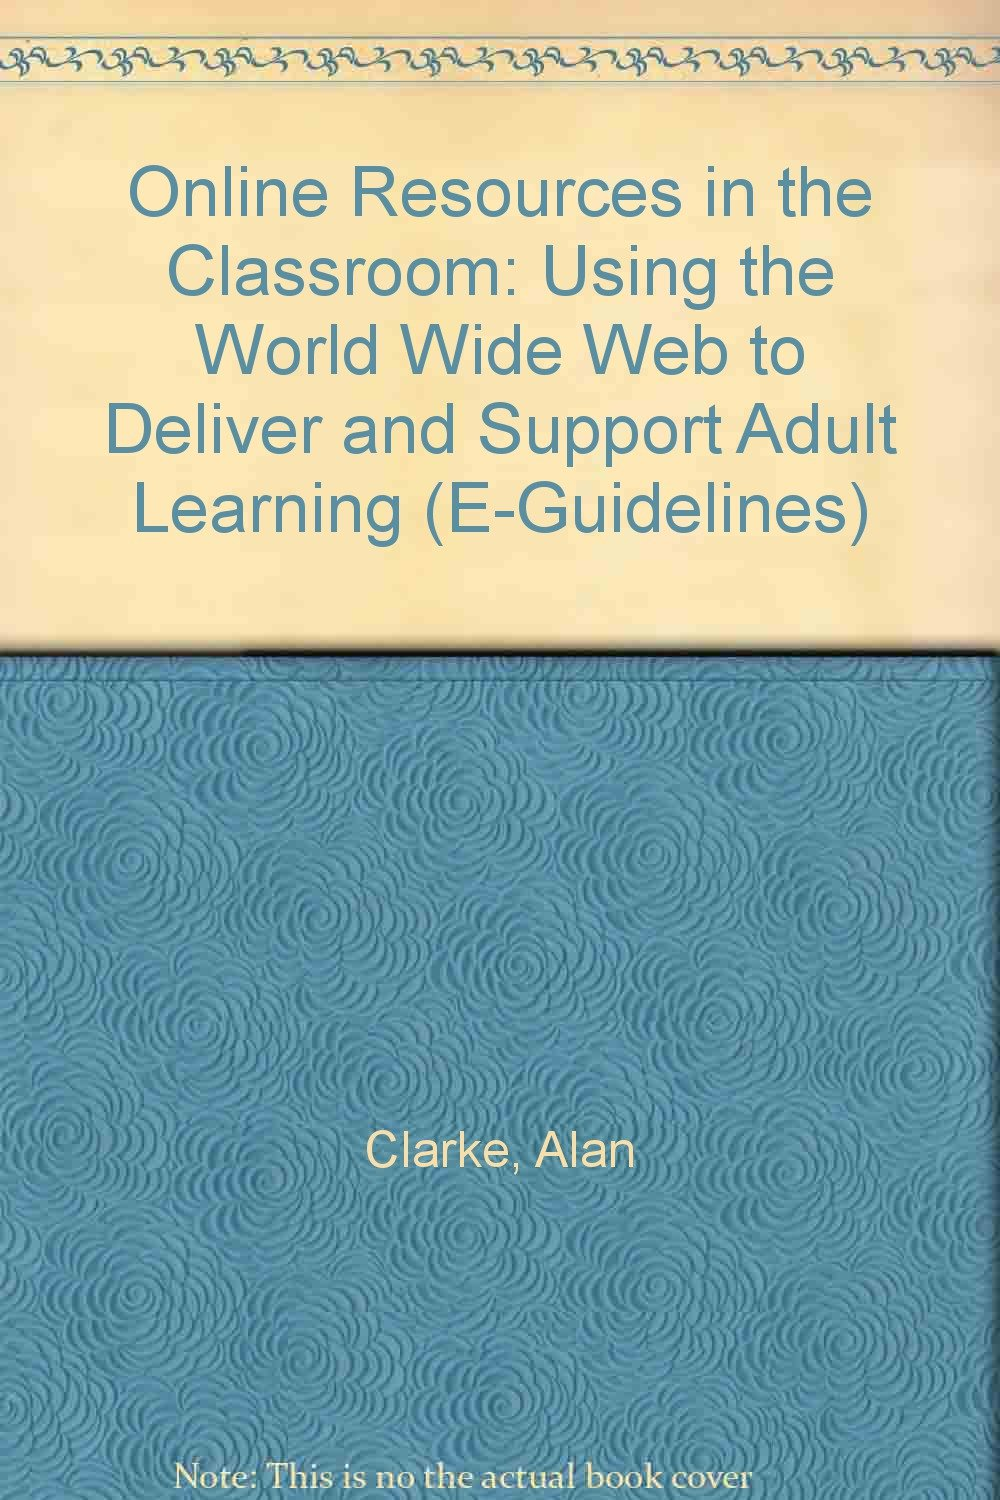 Download Online Resources in the Classroom: Using the World Wide Web to Deliver and Support Adult Learning (E-Guidelines) pdf